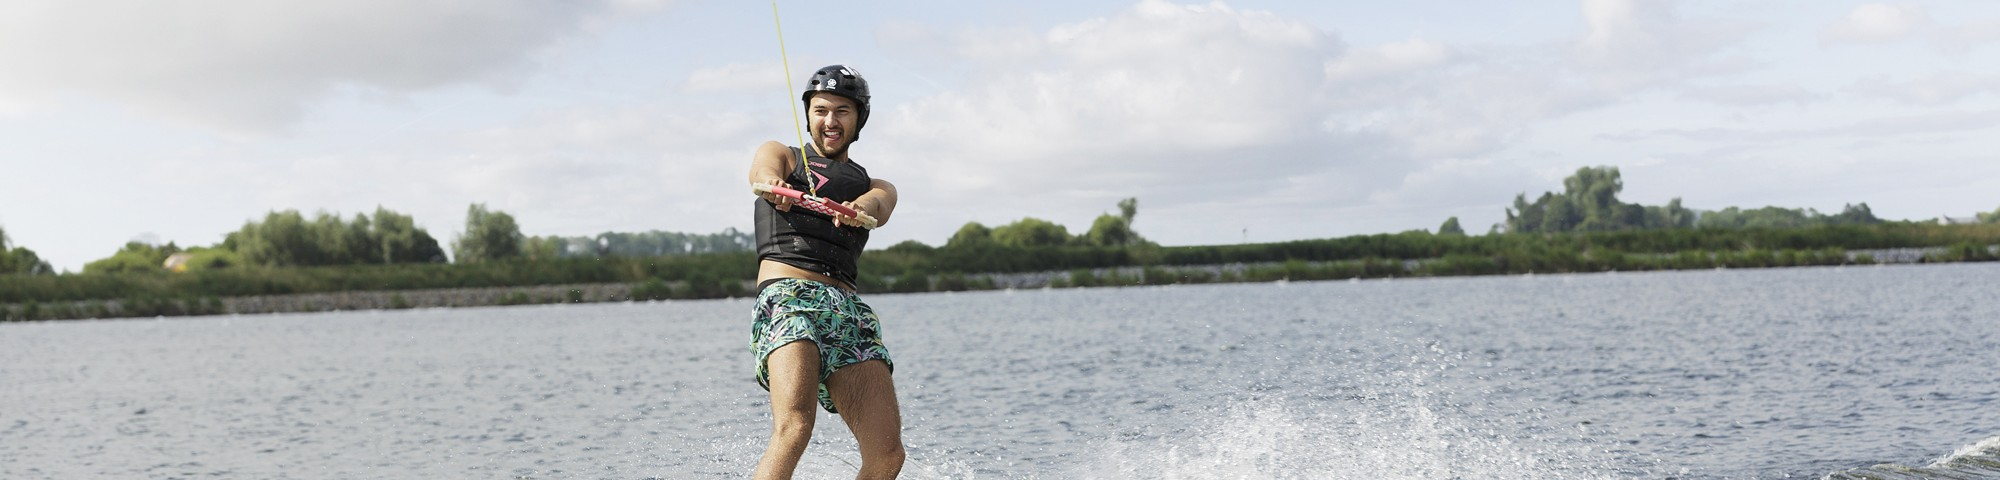 Wakeboarden | Wakeboard school | Eemhof Watersport